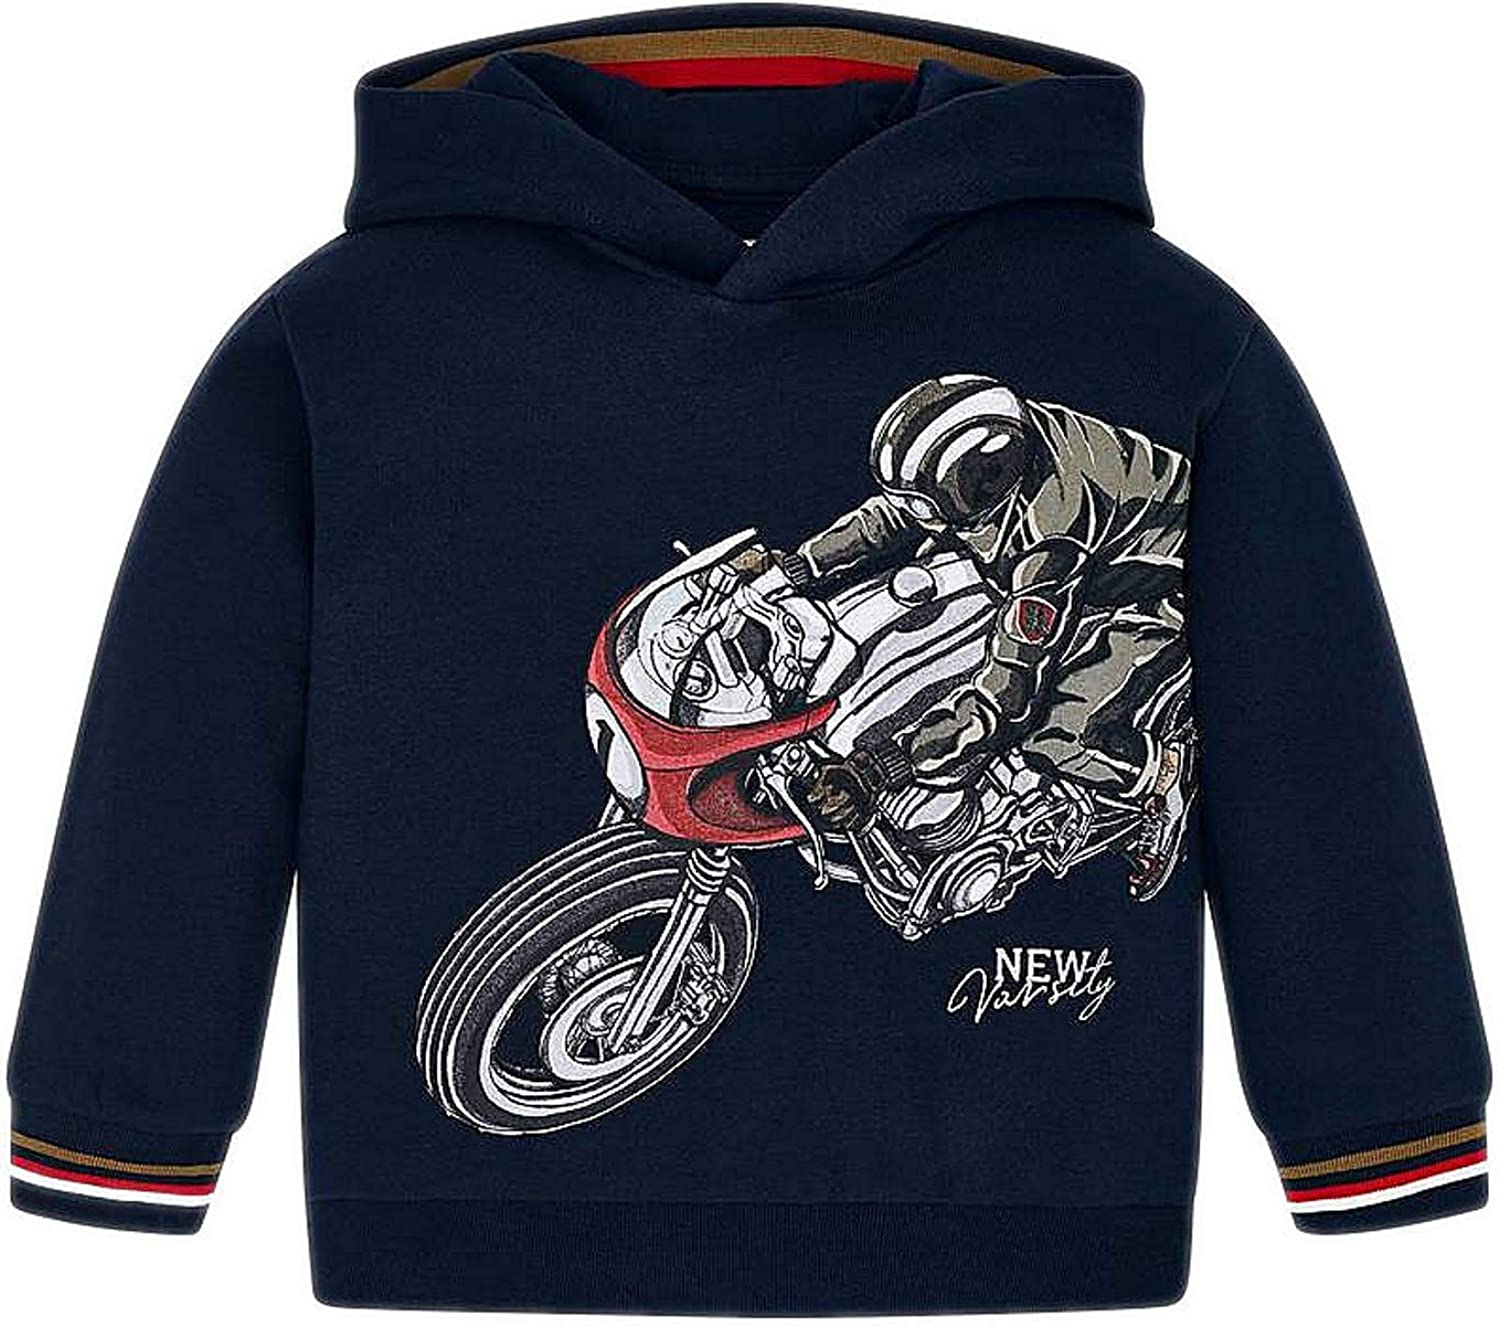 Pullover for Boys Navy 4429 Mayoral